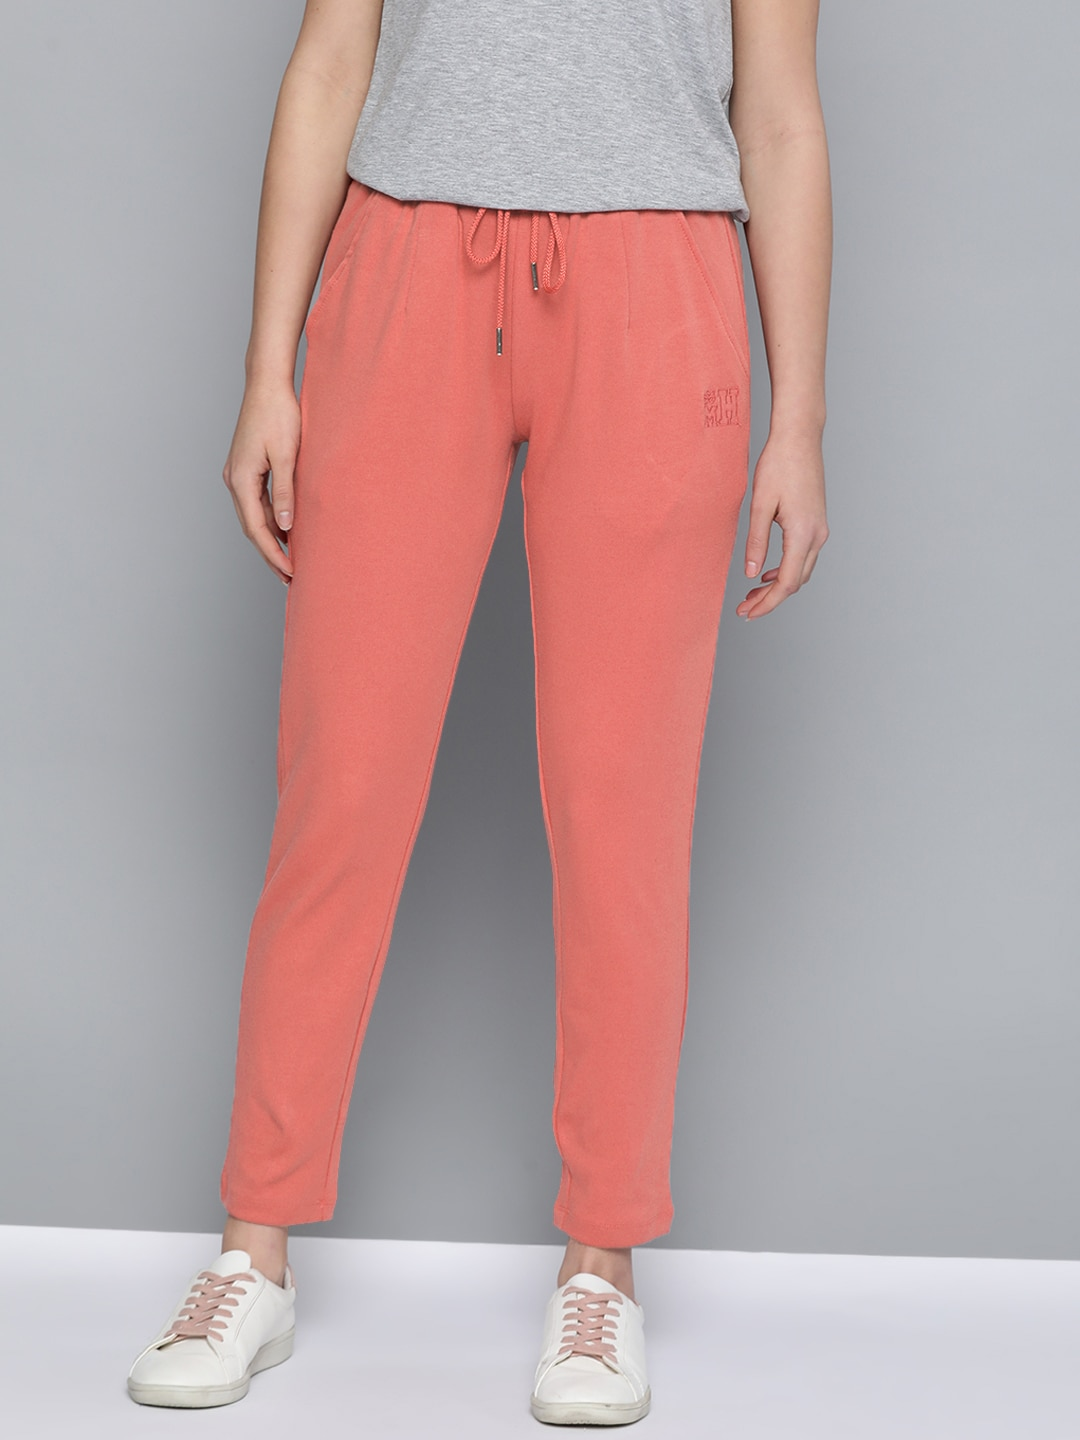 Mast  Harbour Women Coral Pink Solid Pure Cotton Track Pants-13392006